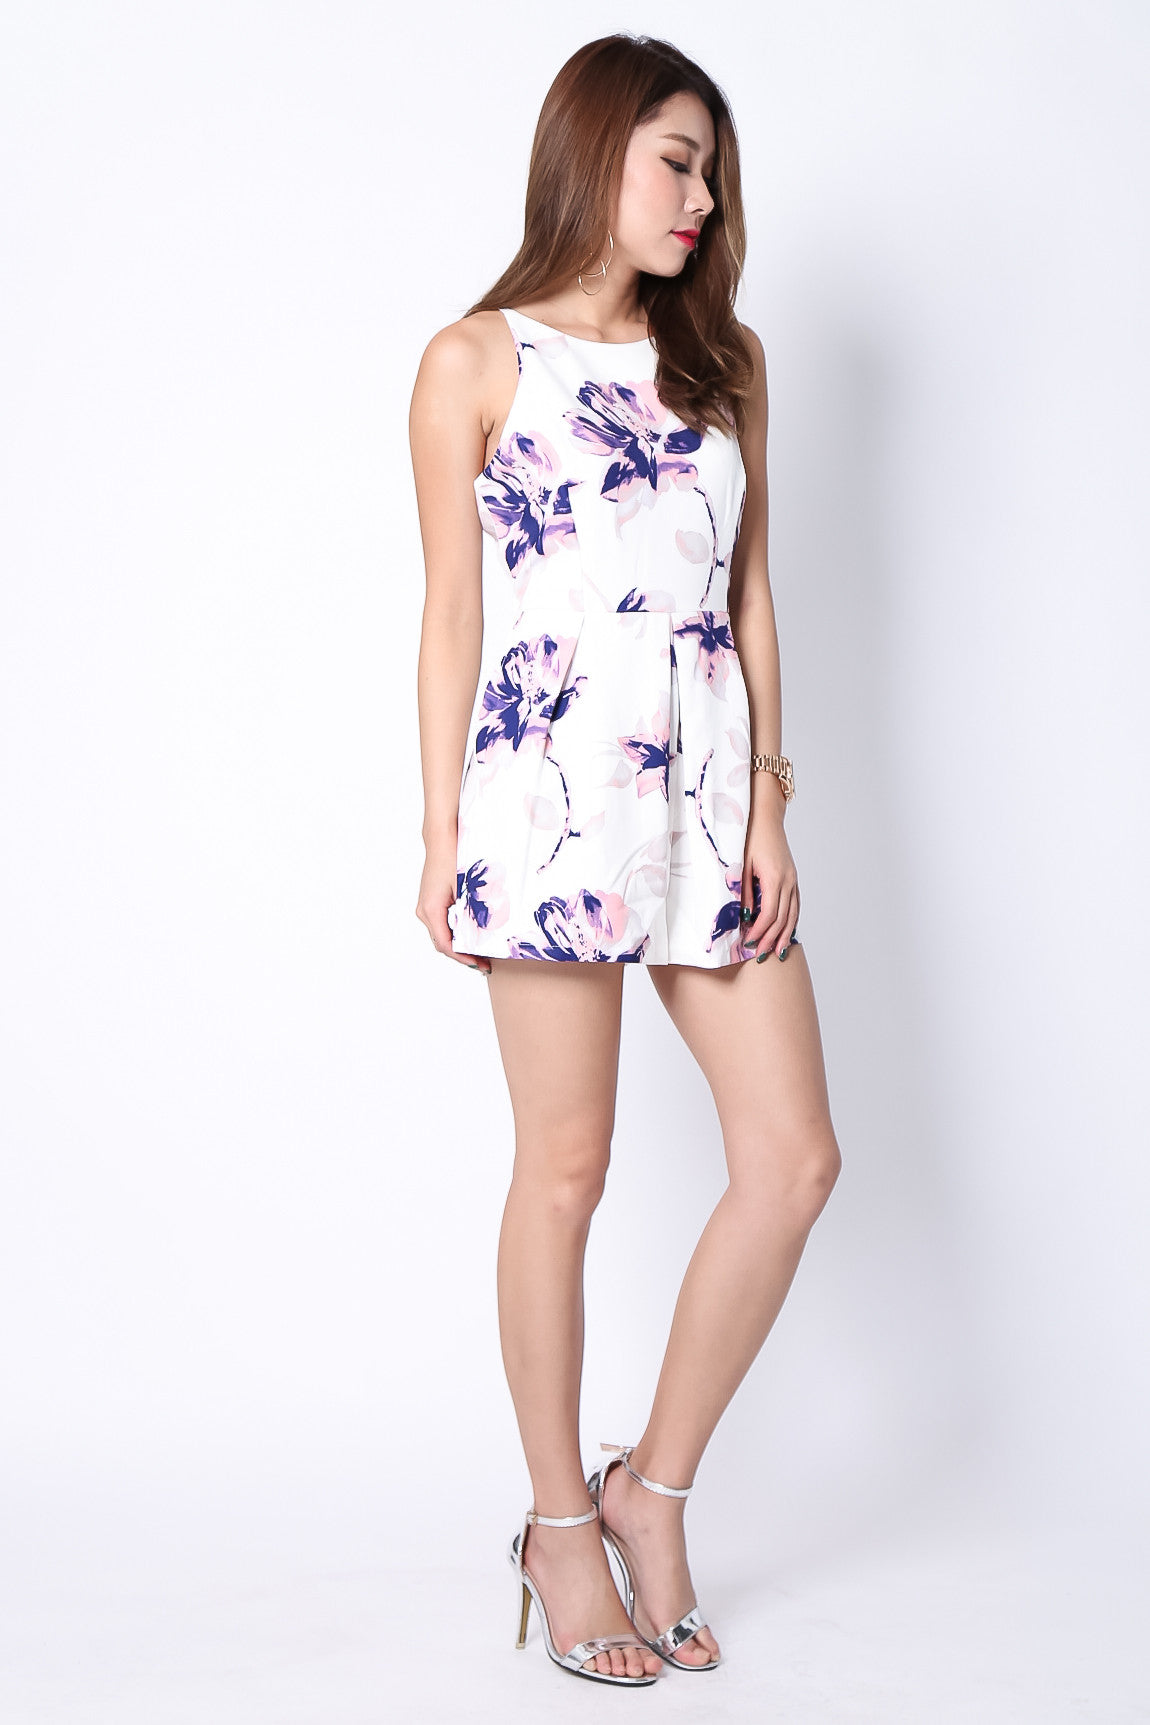 *RESTOCKED* (PREMIUM) FLORAL CRUSH ROMPER IN WHITE - TOPAZETTE